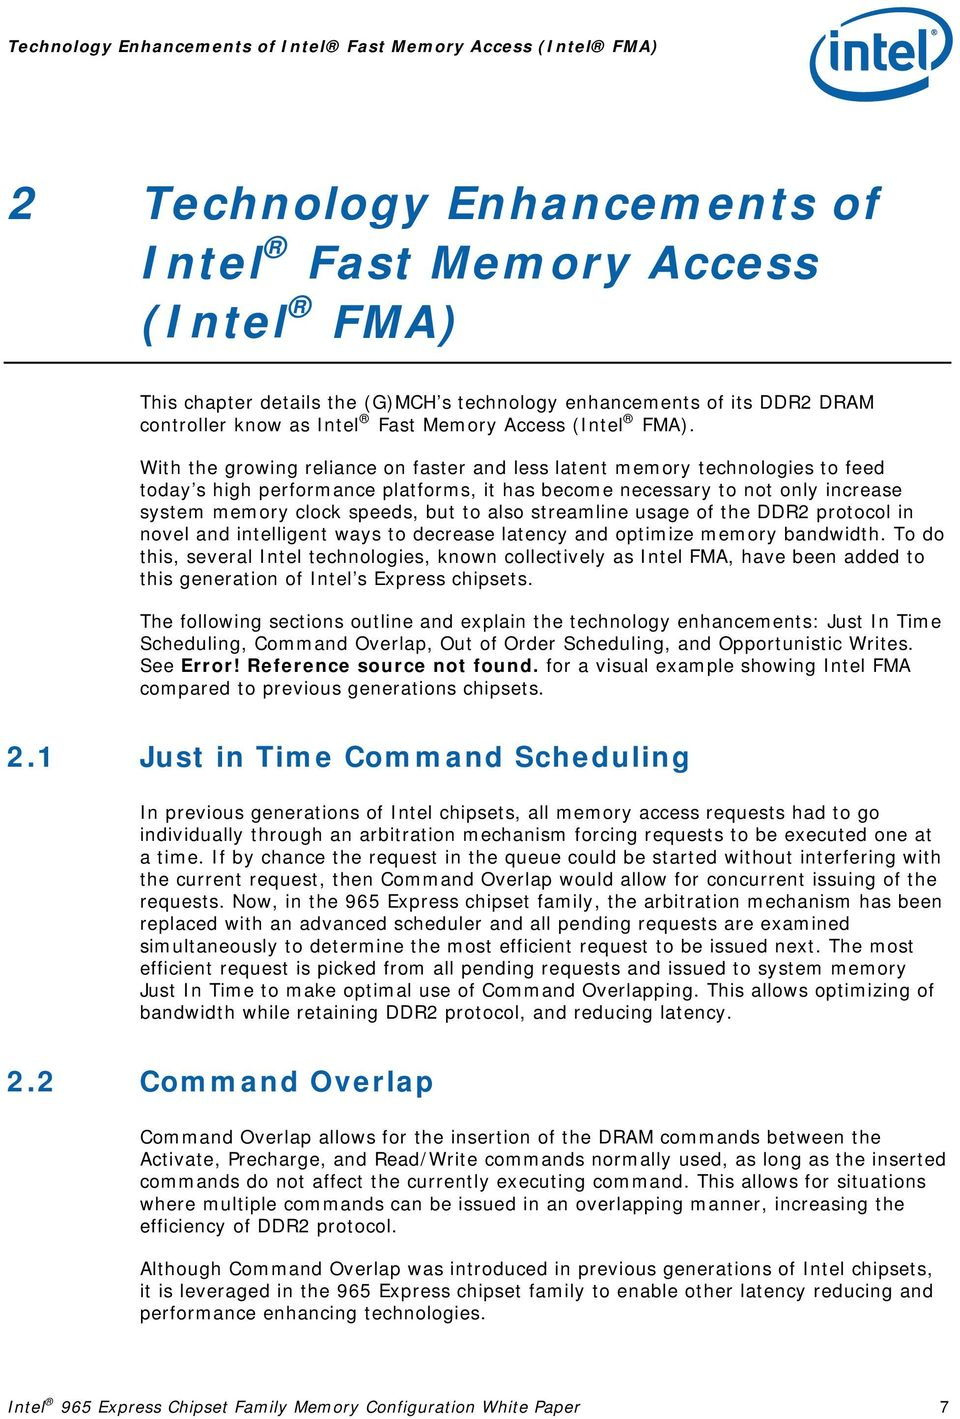 Intel 965 Express Chipset Family Memory Technology and